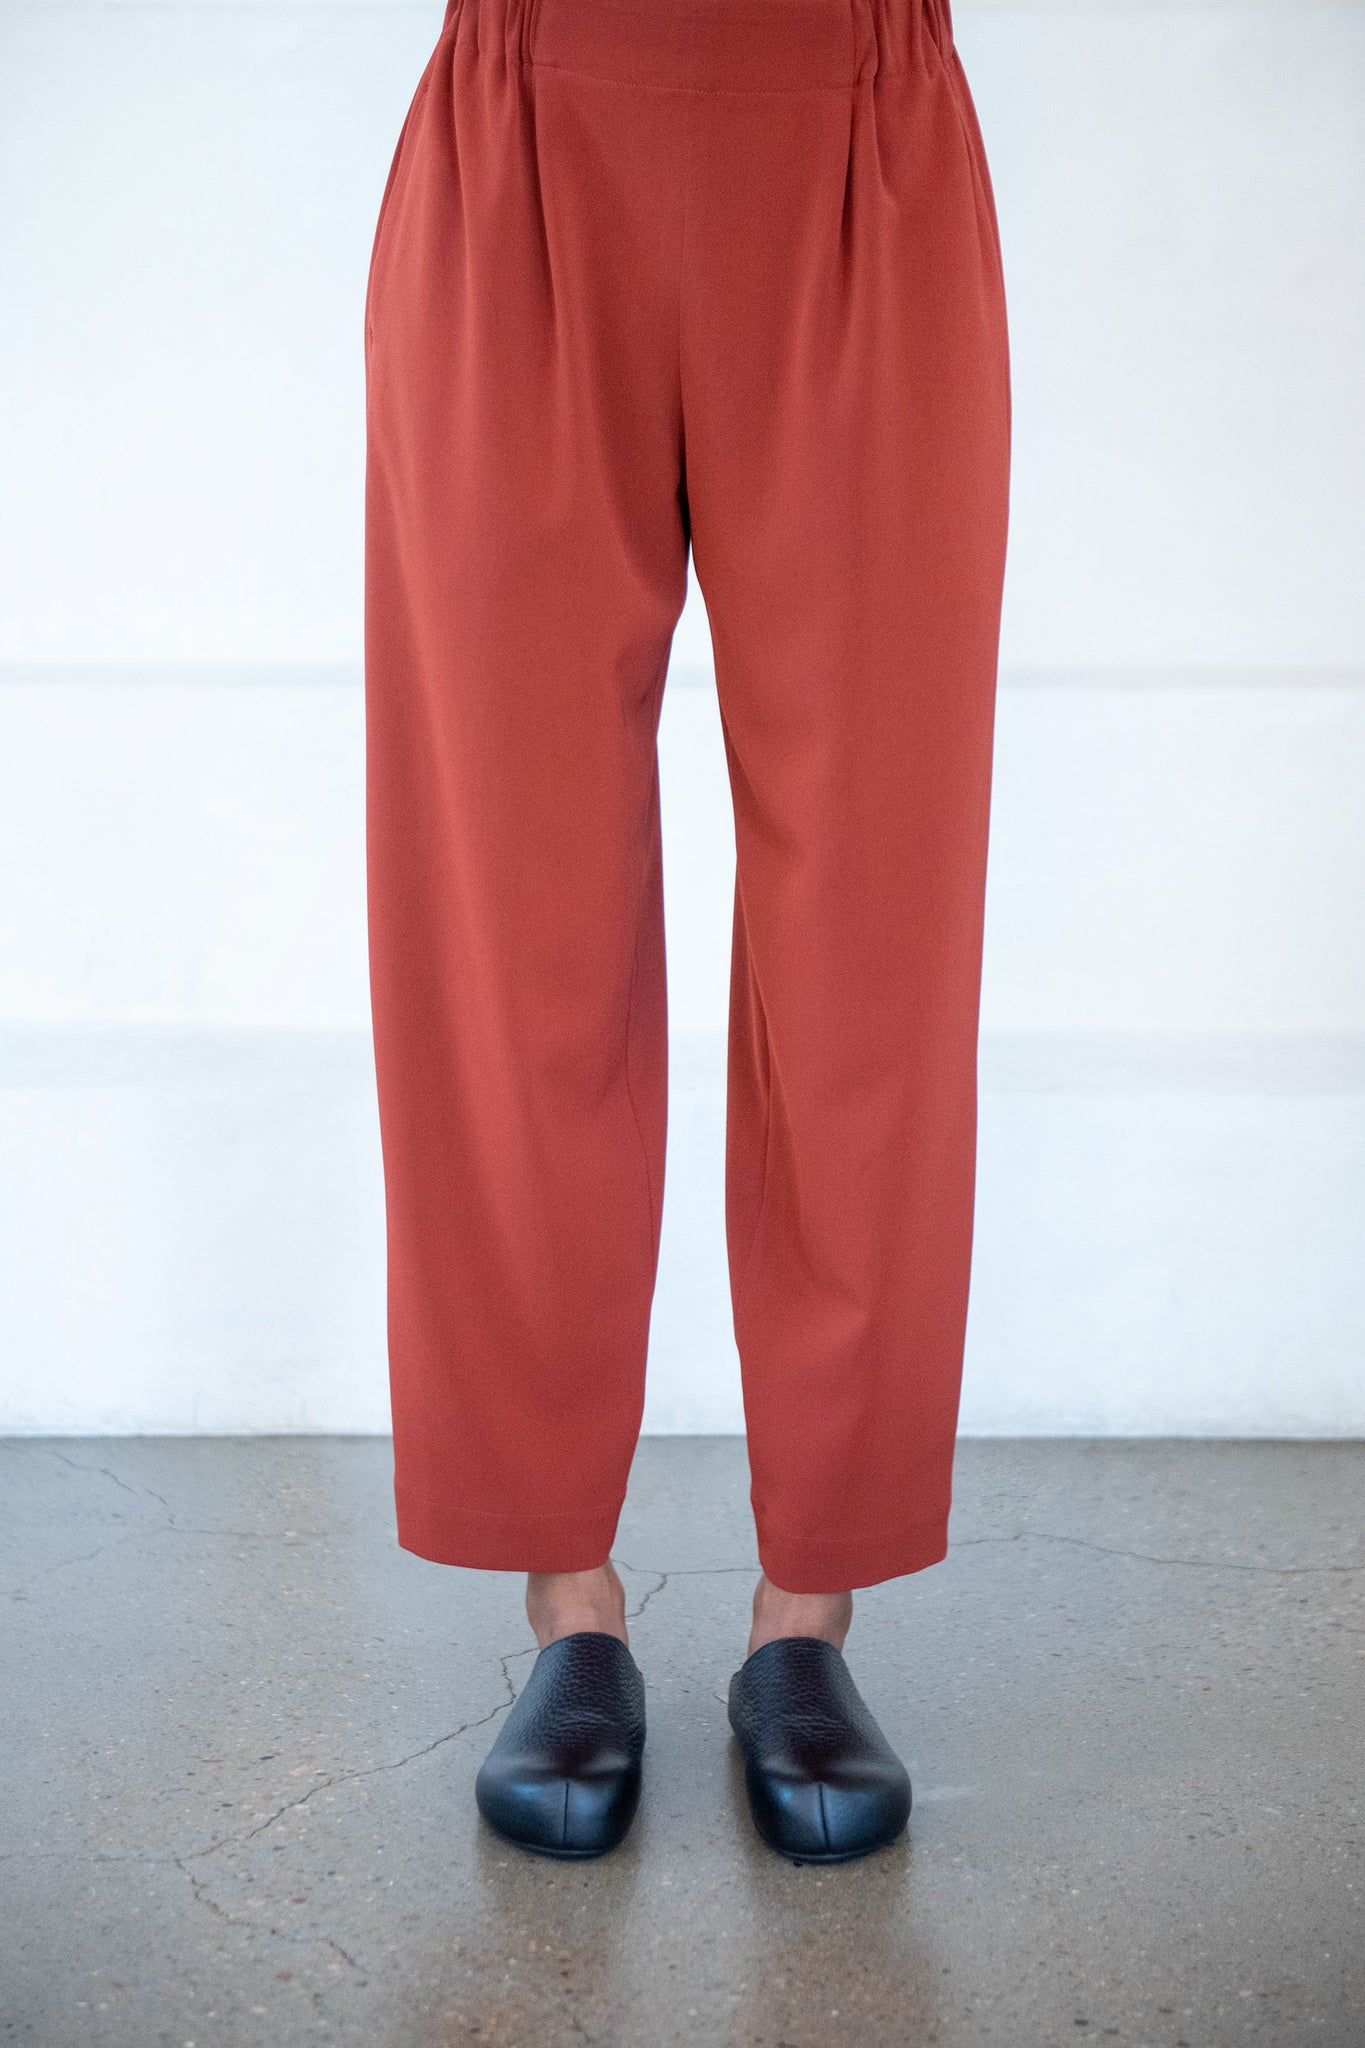 Issey Miyake - twisted cut pants, brown